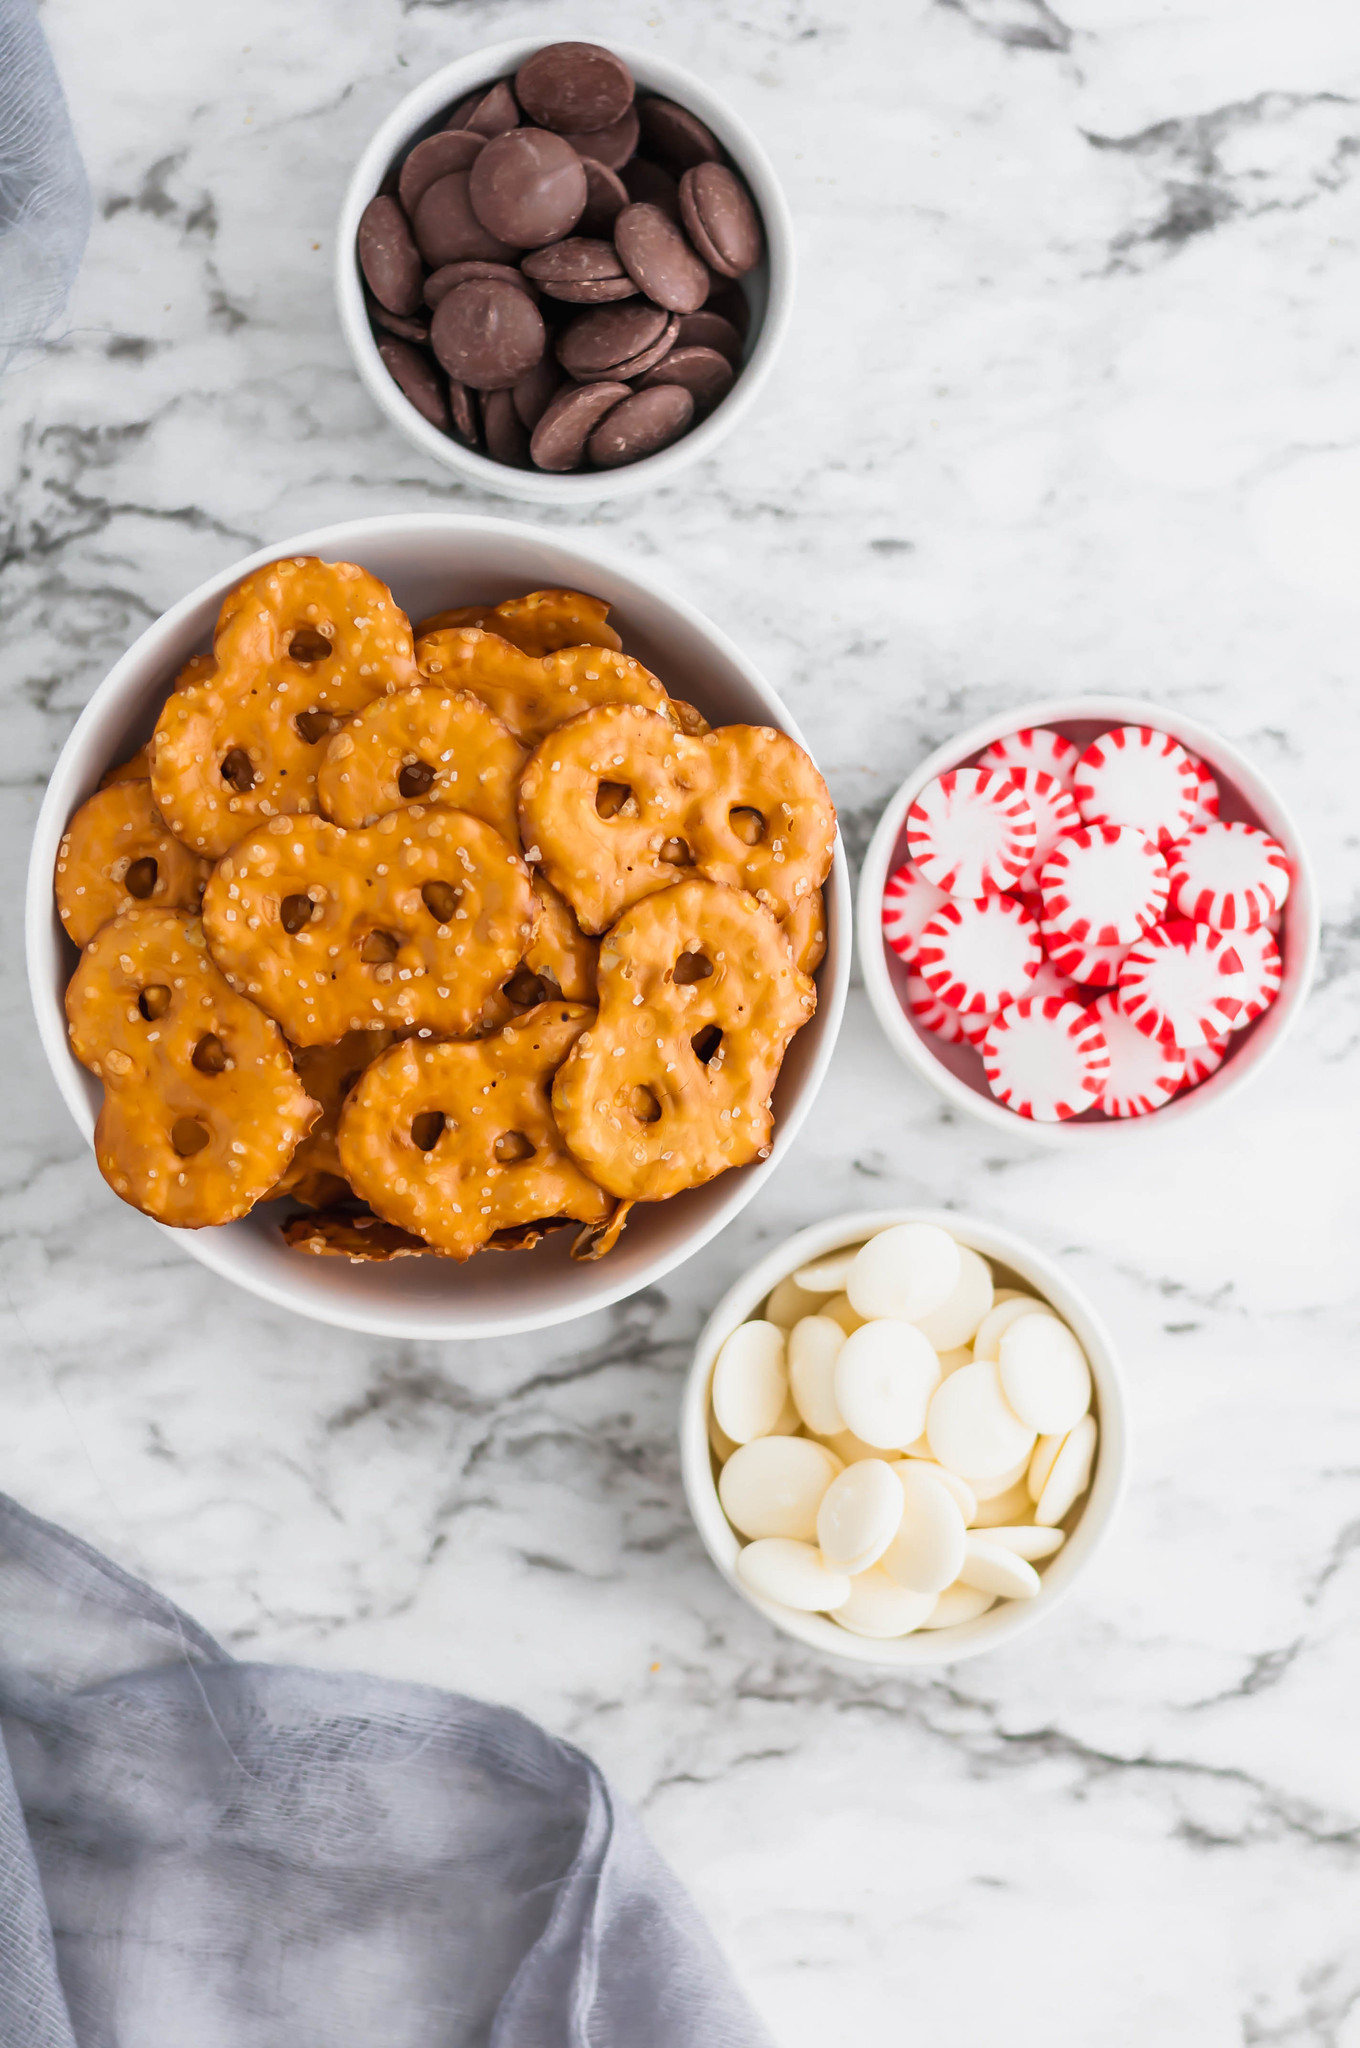 Ingredients for Chocolate Peppermint Pretzels. Looking for a delicious sweet and salty treat this holiday season? These Chocolate Peppermint Pretzels are just what you need. Only 4 ingredients and about 20 minutes needed to make these yummy treats. Perfect for Christmas cookie trays and homemade gifts.